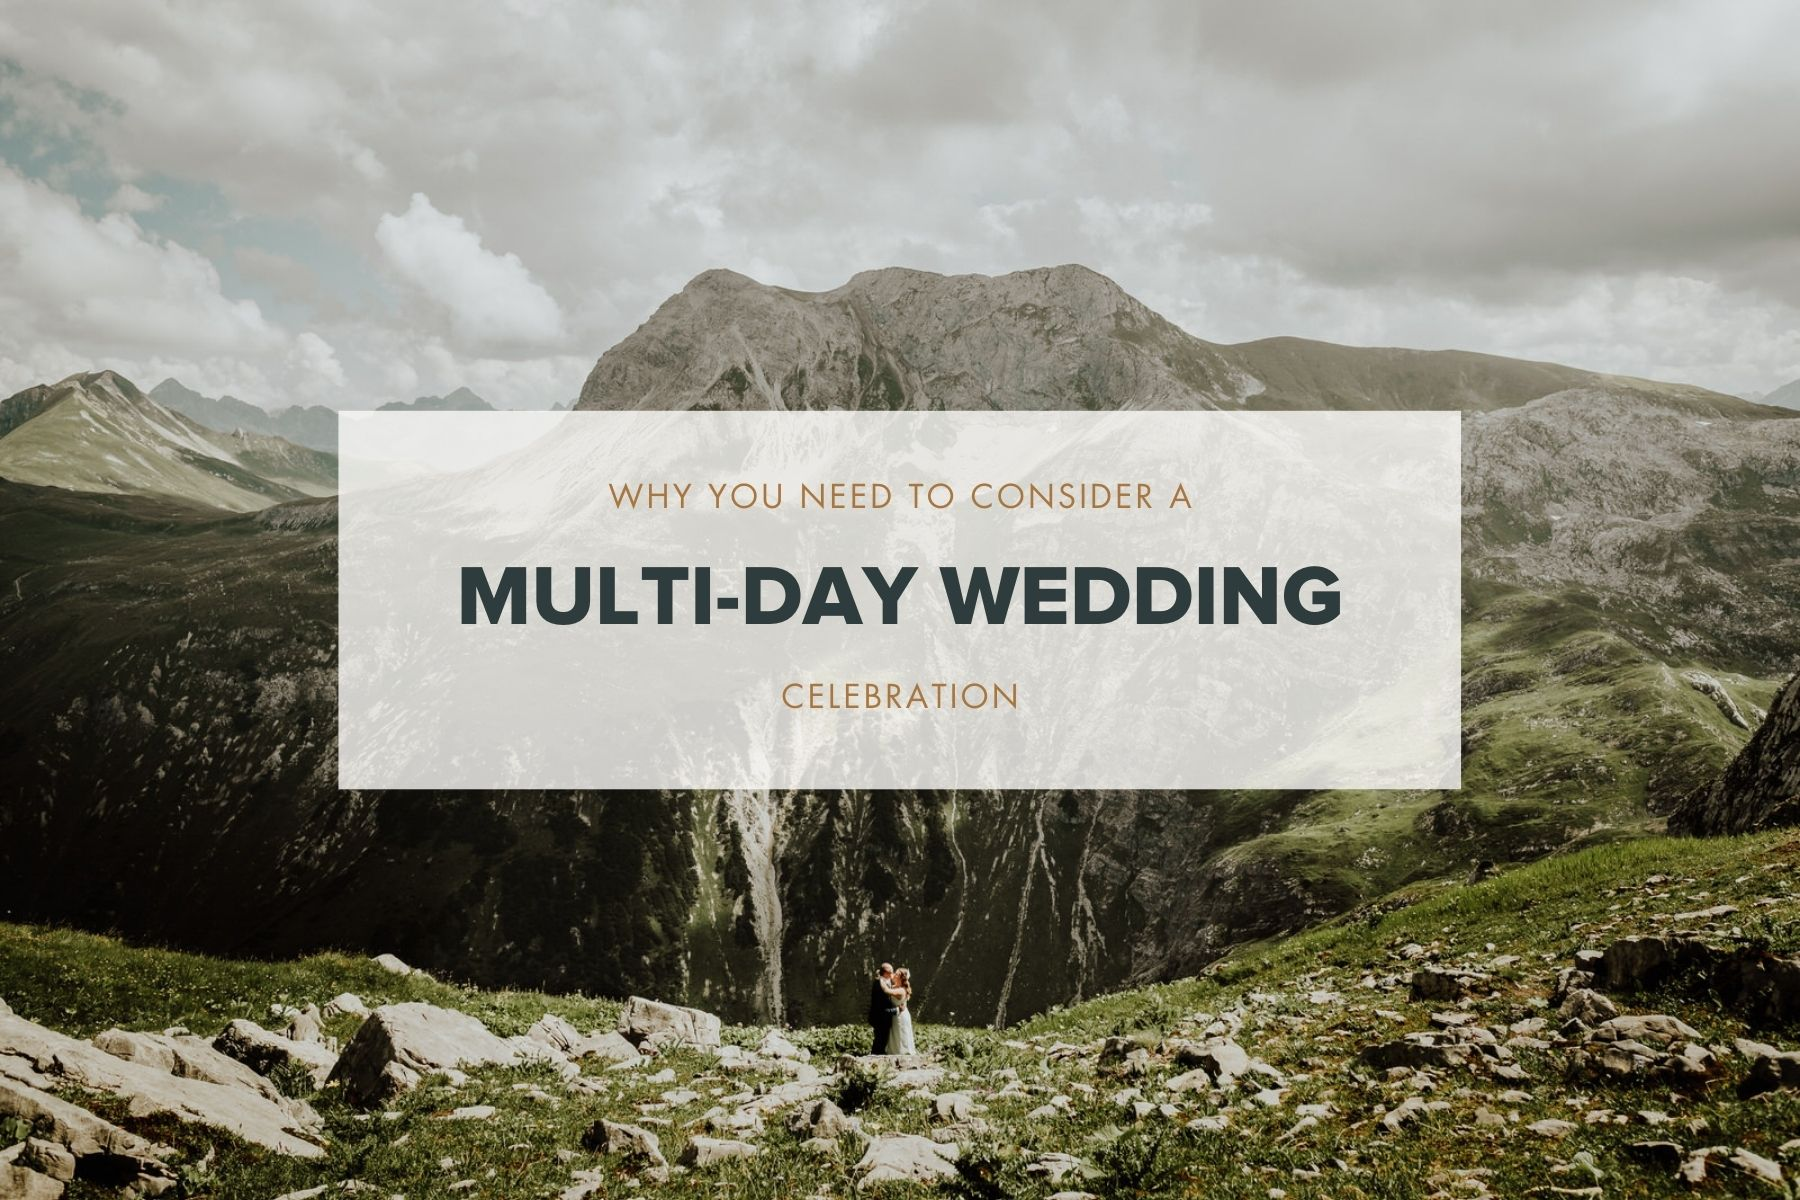 why you should consider a multi-day wedding